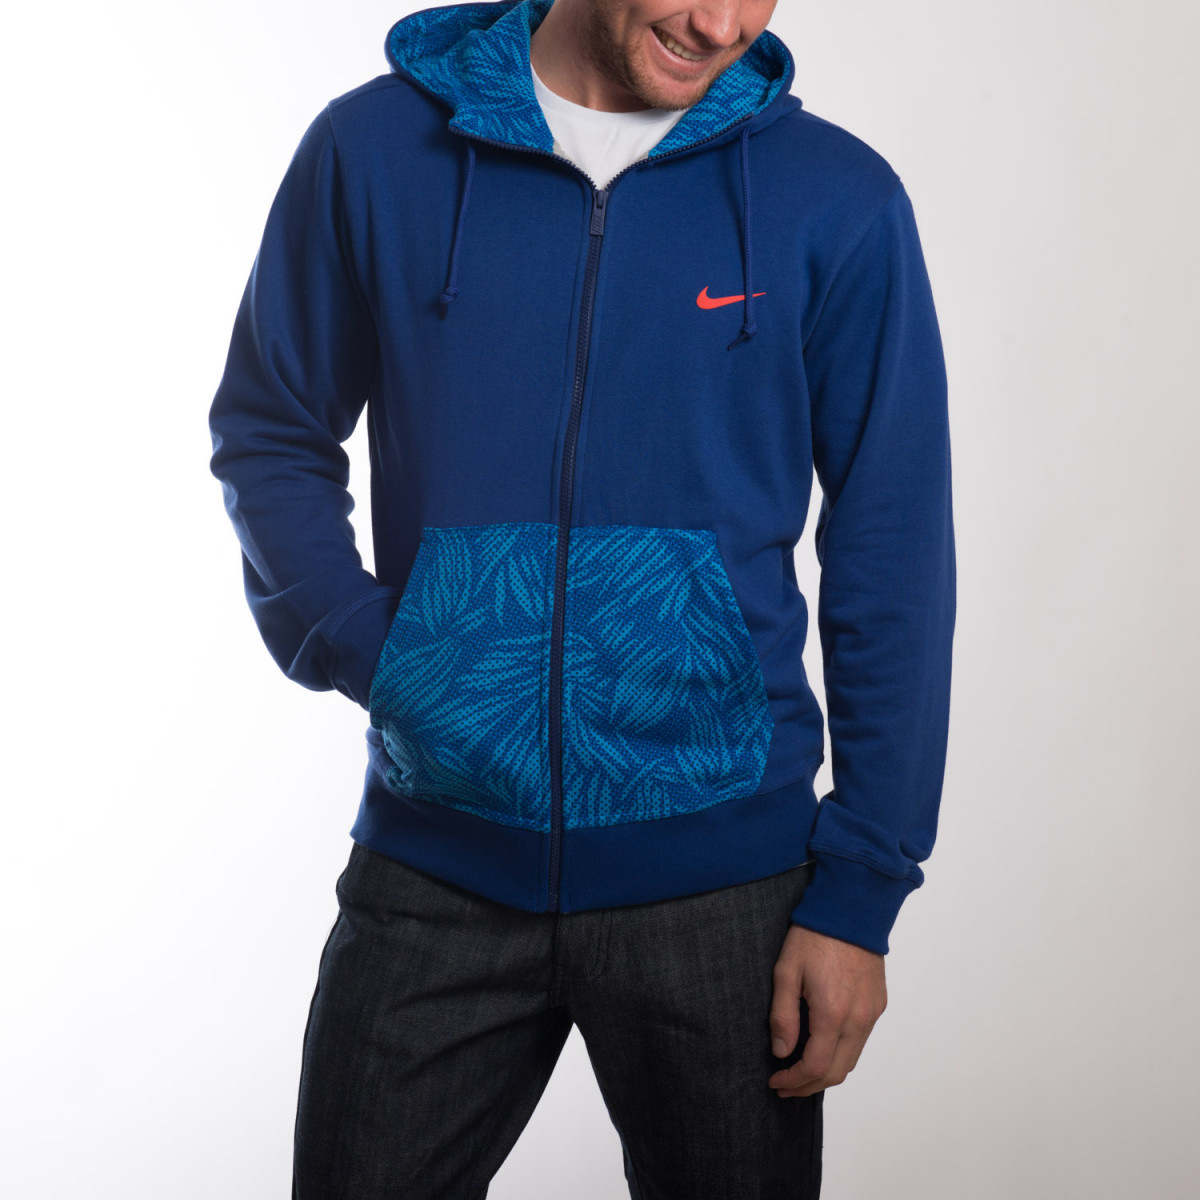 CAMPERA NIKE CLUB FT FZ HDY